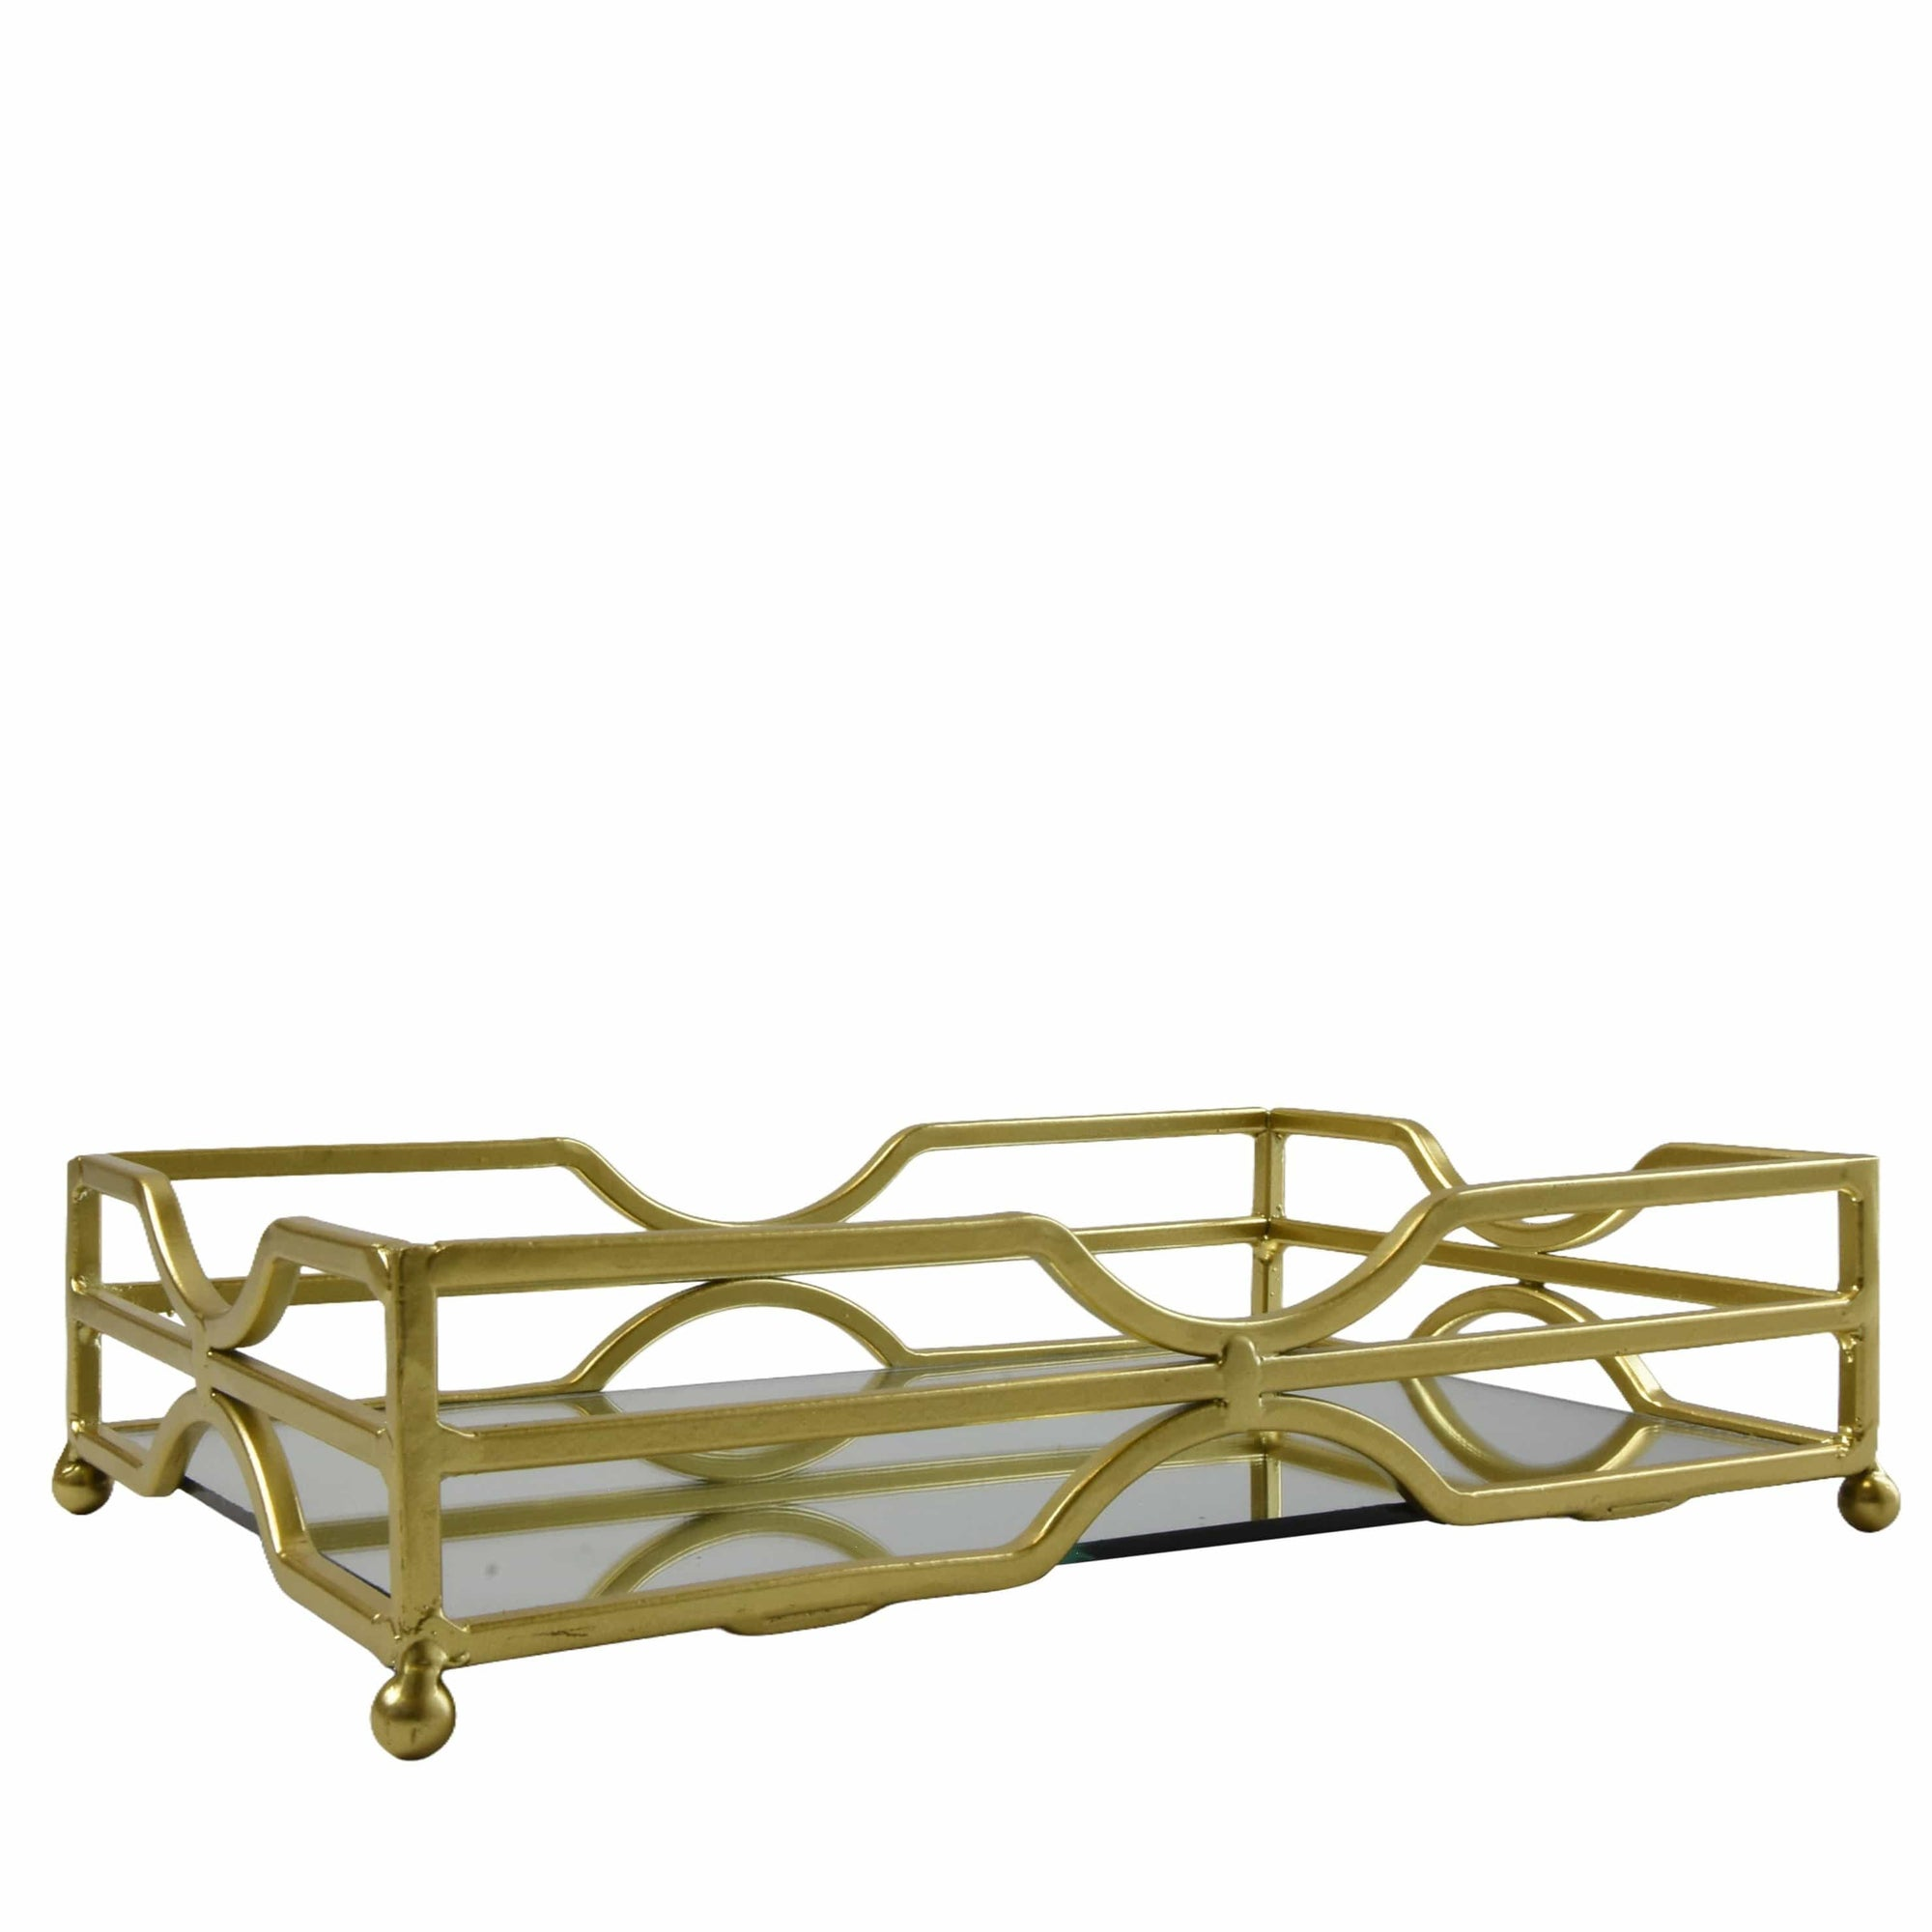 Candlelight Home Gold Rectangular Mirrored Tray